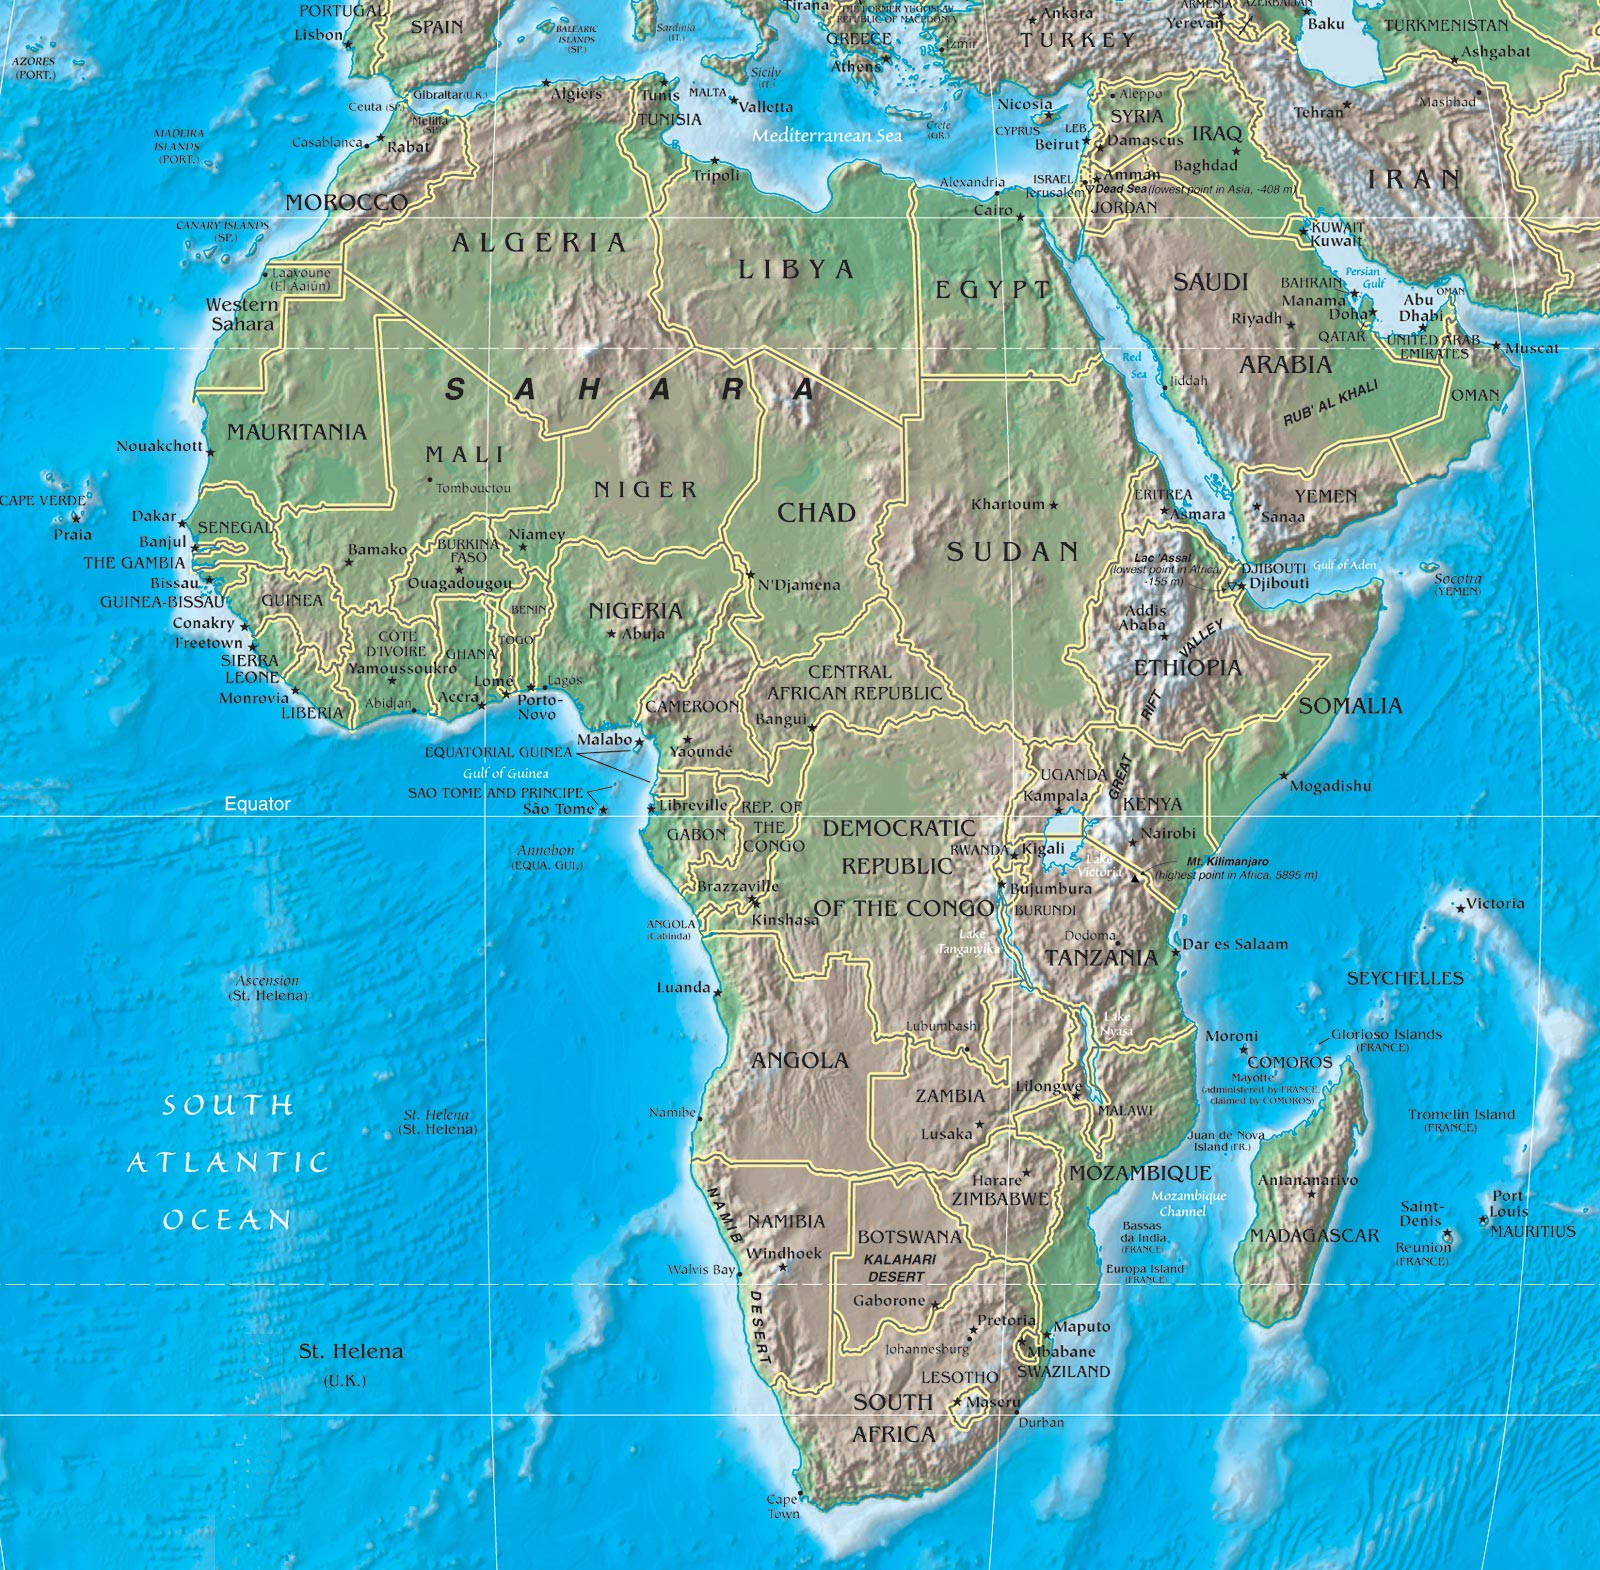 Physical Map of Africa - Rivers, Terrain, Forests and ...